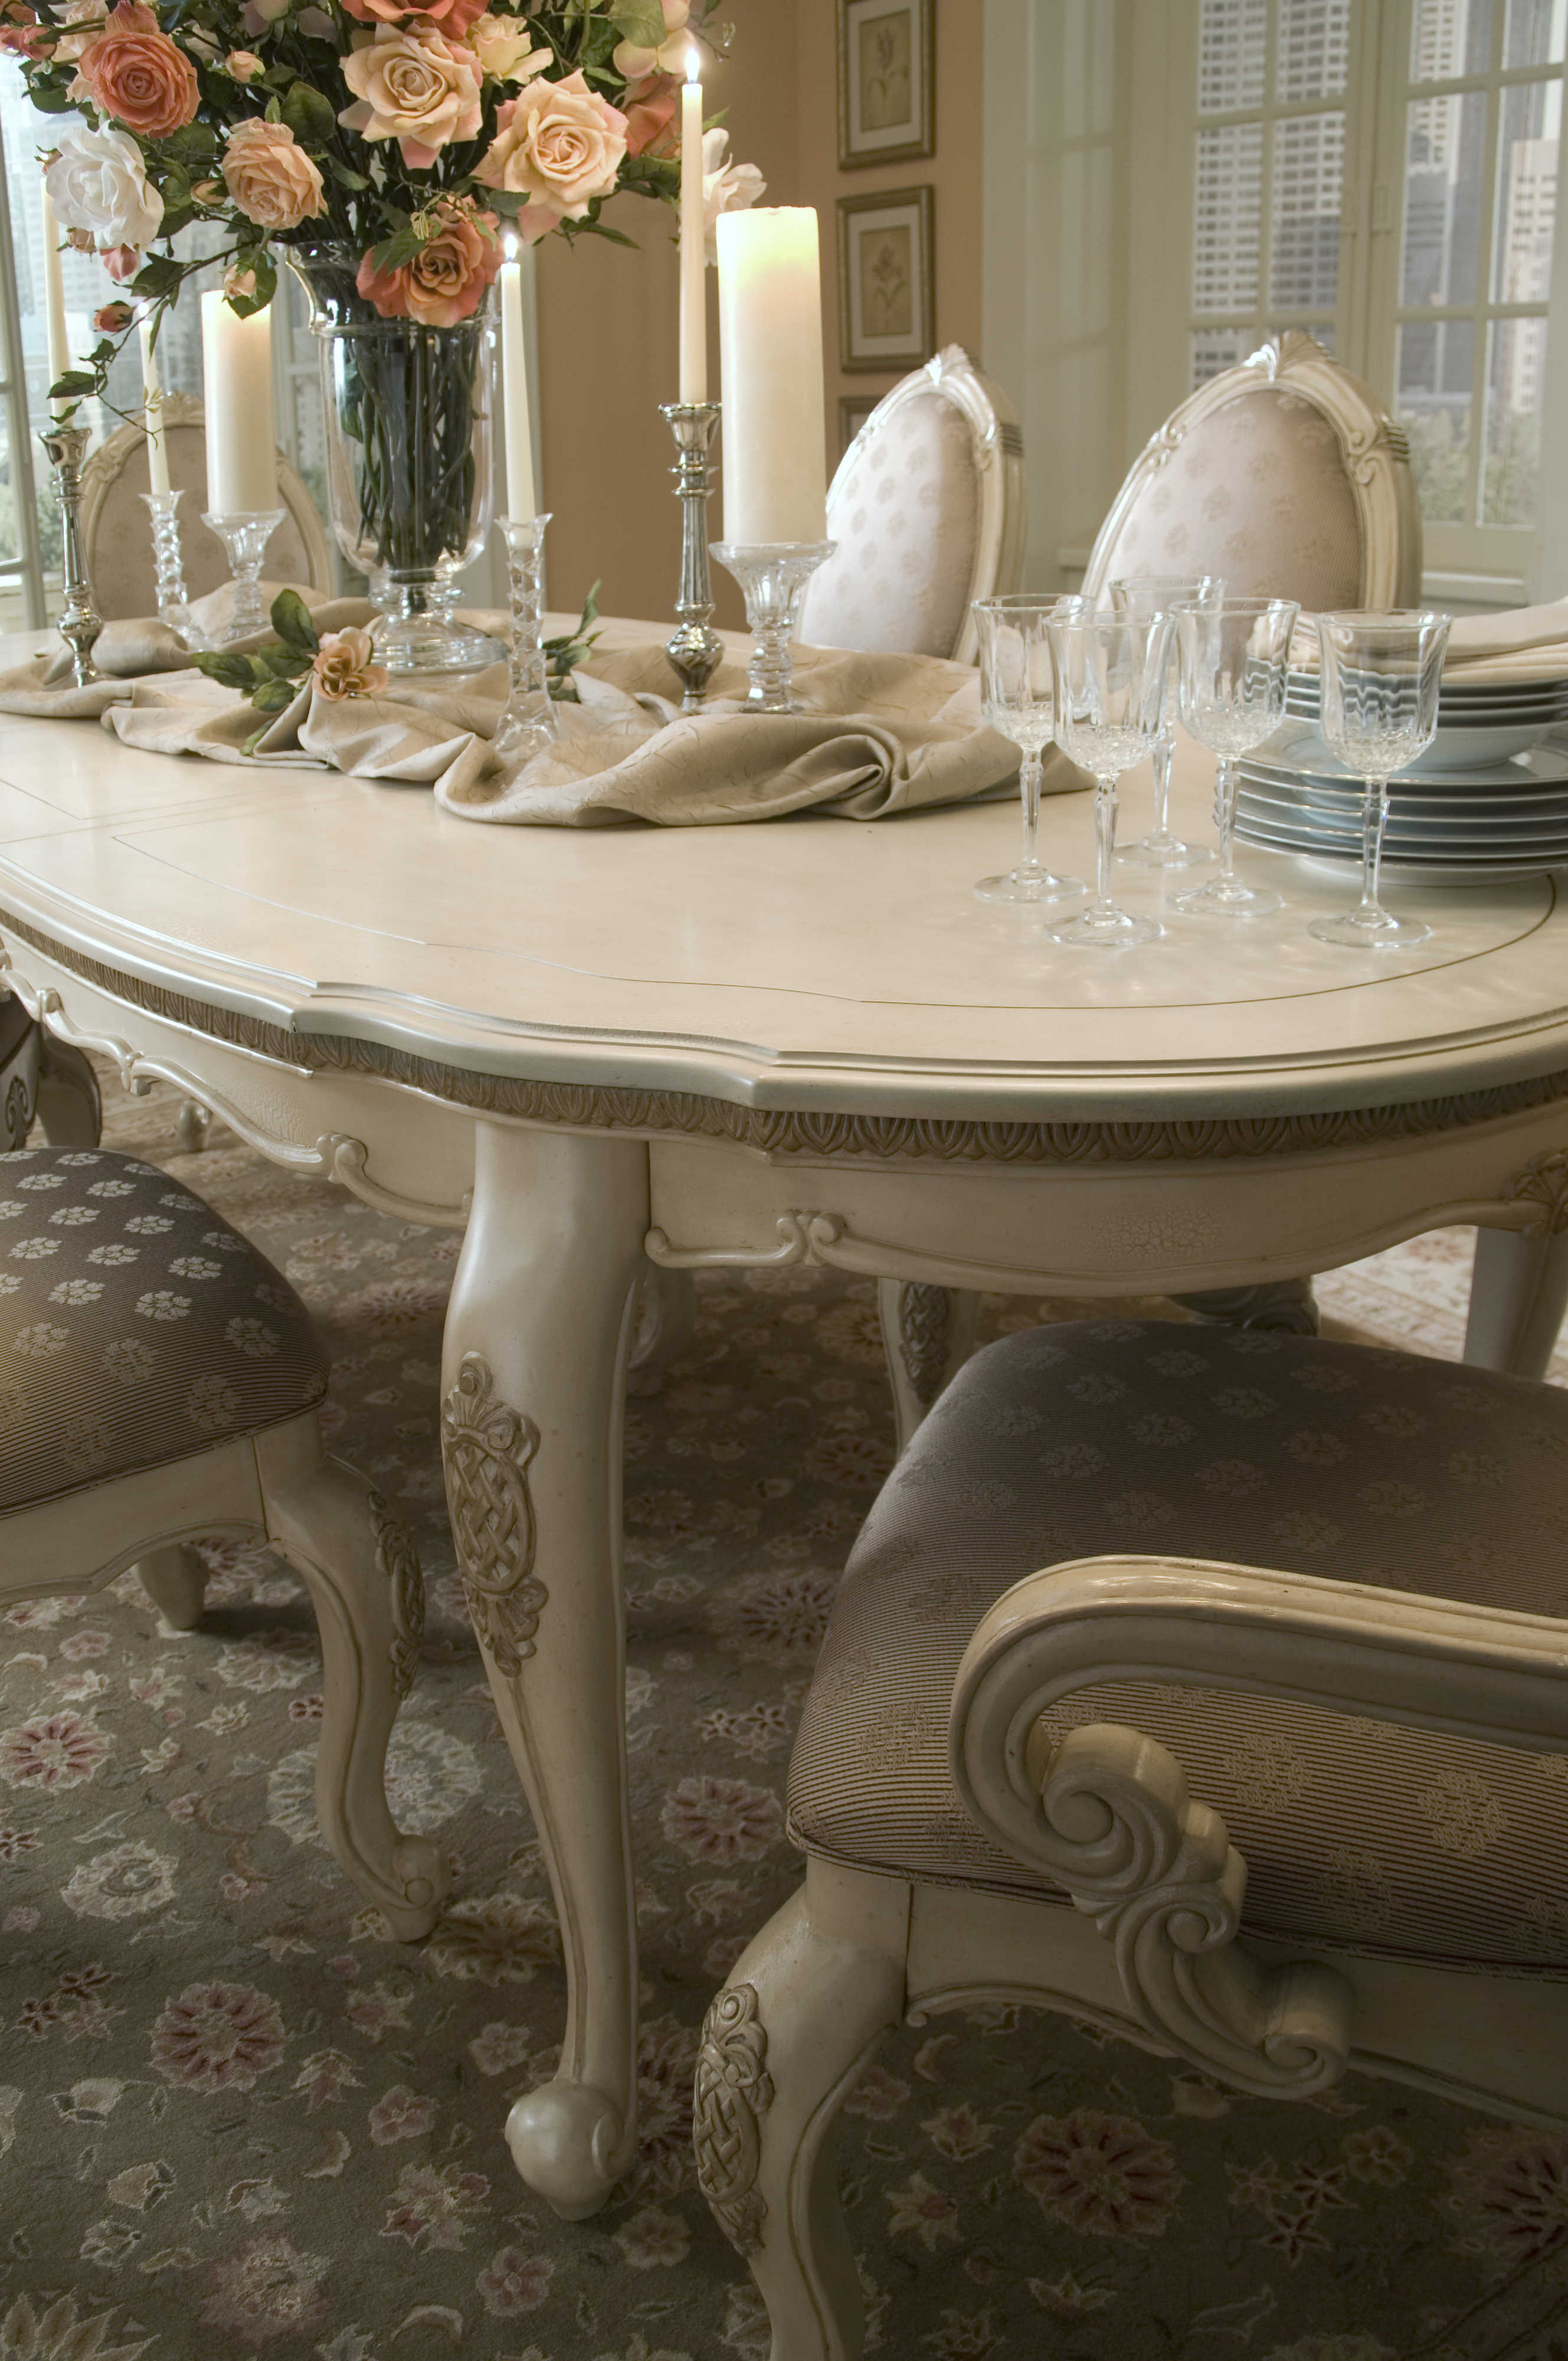 Aico Furniture Michael Amini Lavelle Blanc 78 102 W X 42 D Oval Dining Table